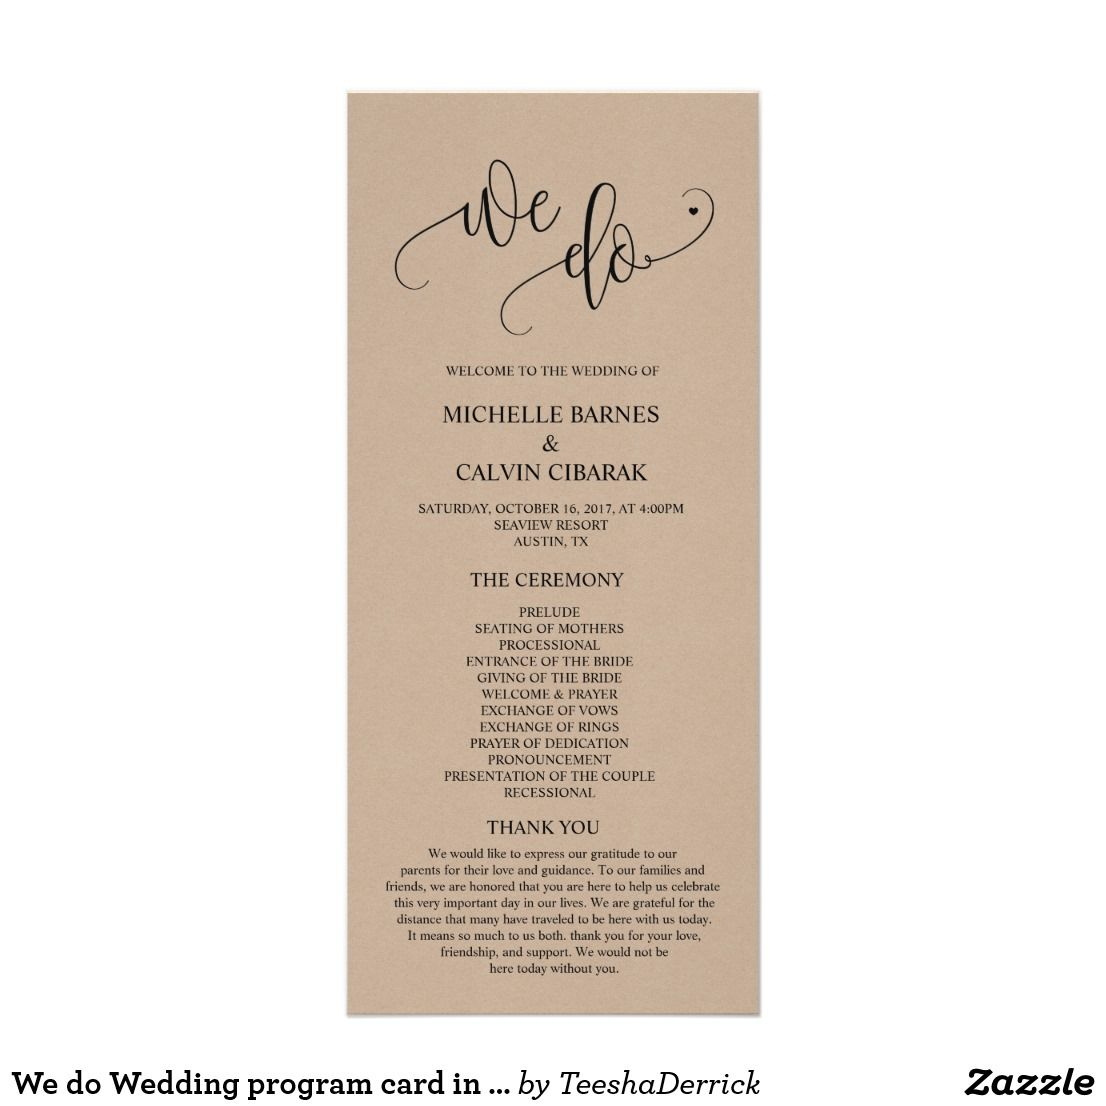 We Do Wedding Program Card In Modern Rustic Theme Zazzle Com Modern Rustic Design Rustic Cafe Rustic House